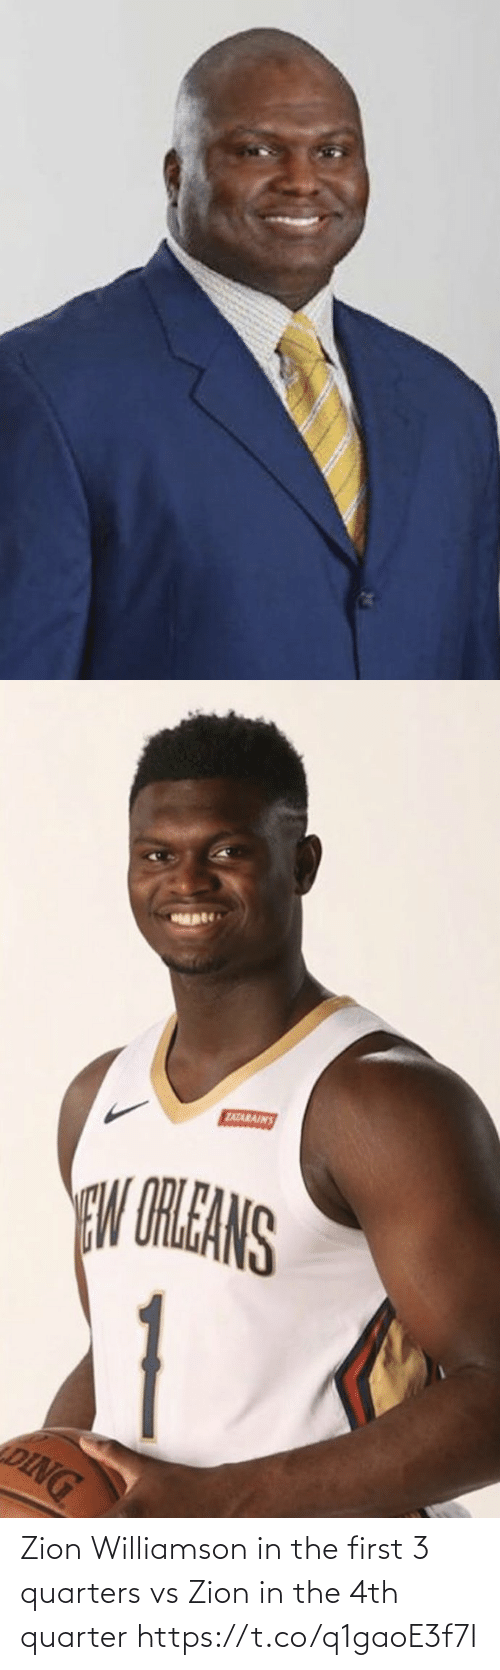 ballmemes.com: Zion Williamson in the first 3 quarters vs Zion in the 4th quarter https://t.co/q1gaoE3f7I